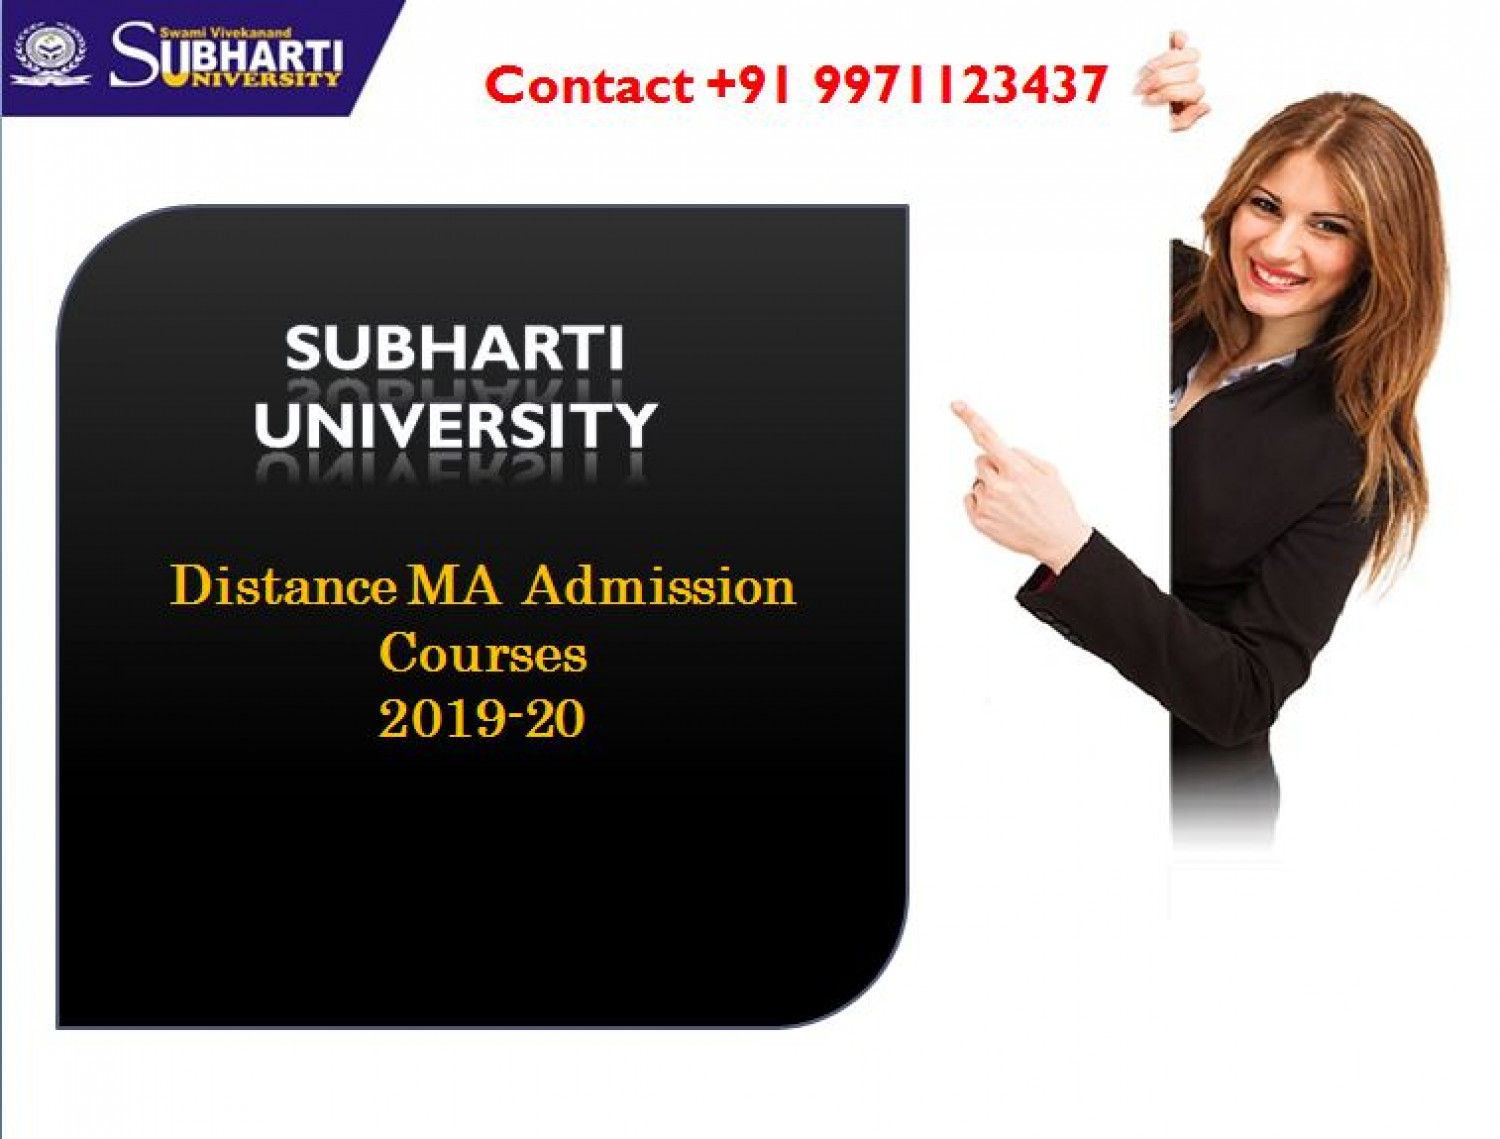 Subharti University: Distance MA Admission Courses Infographic